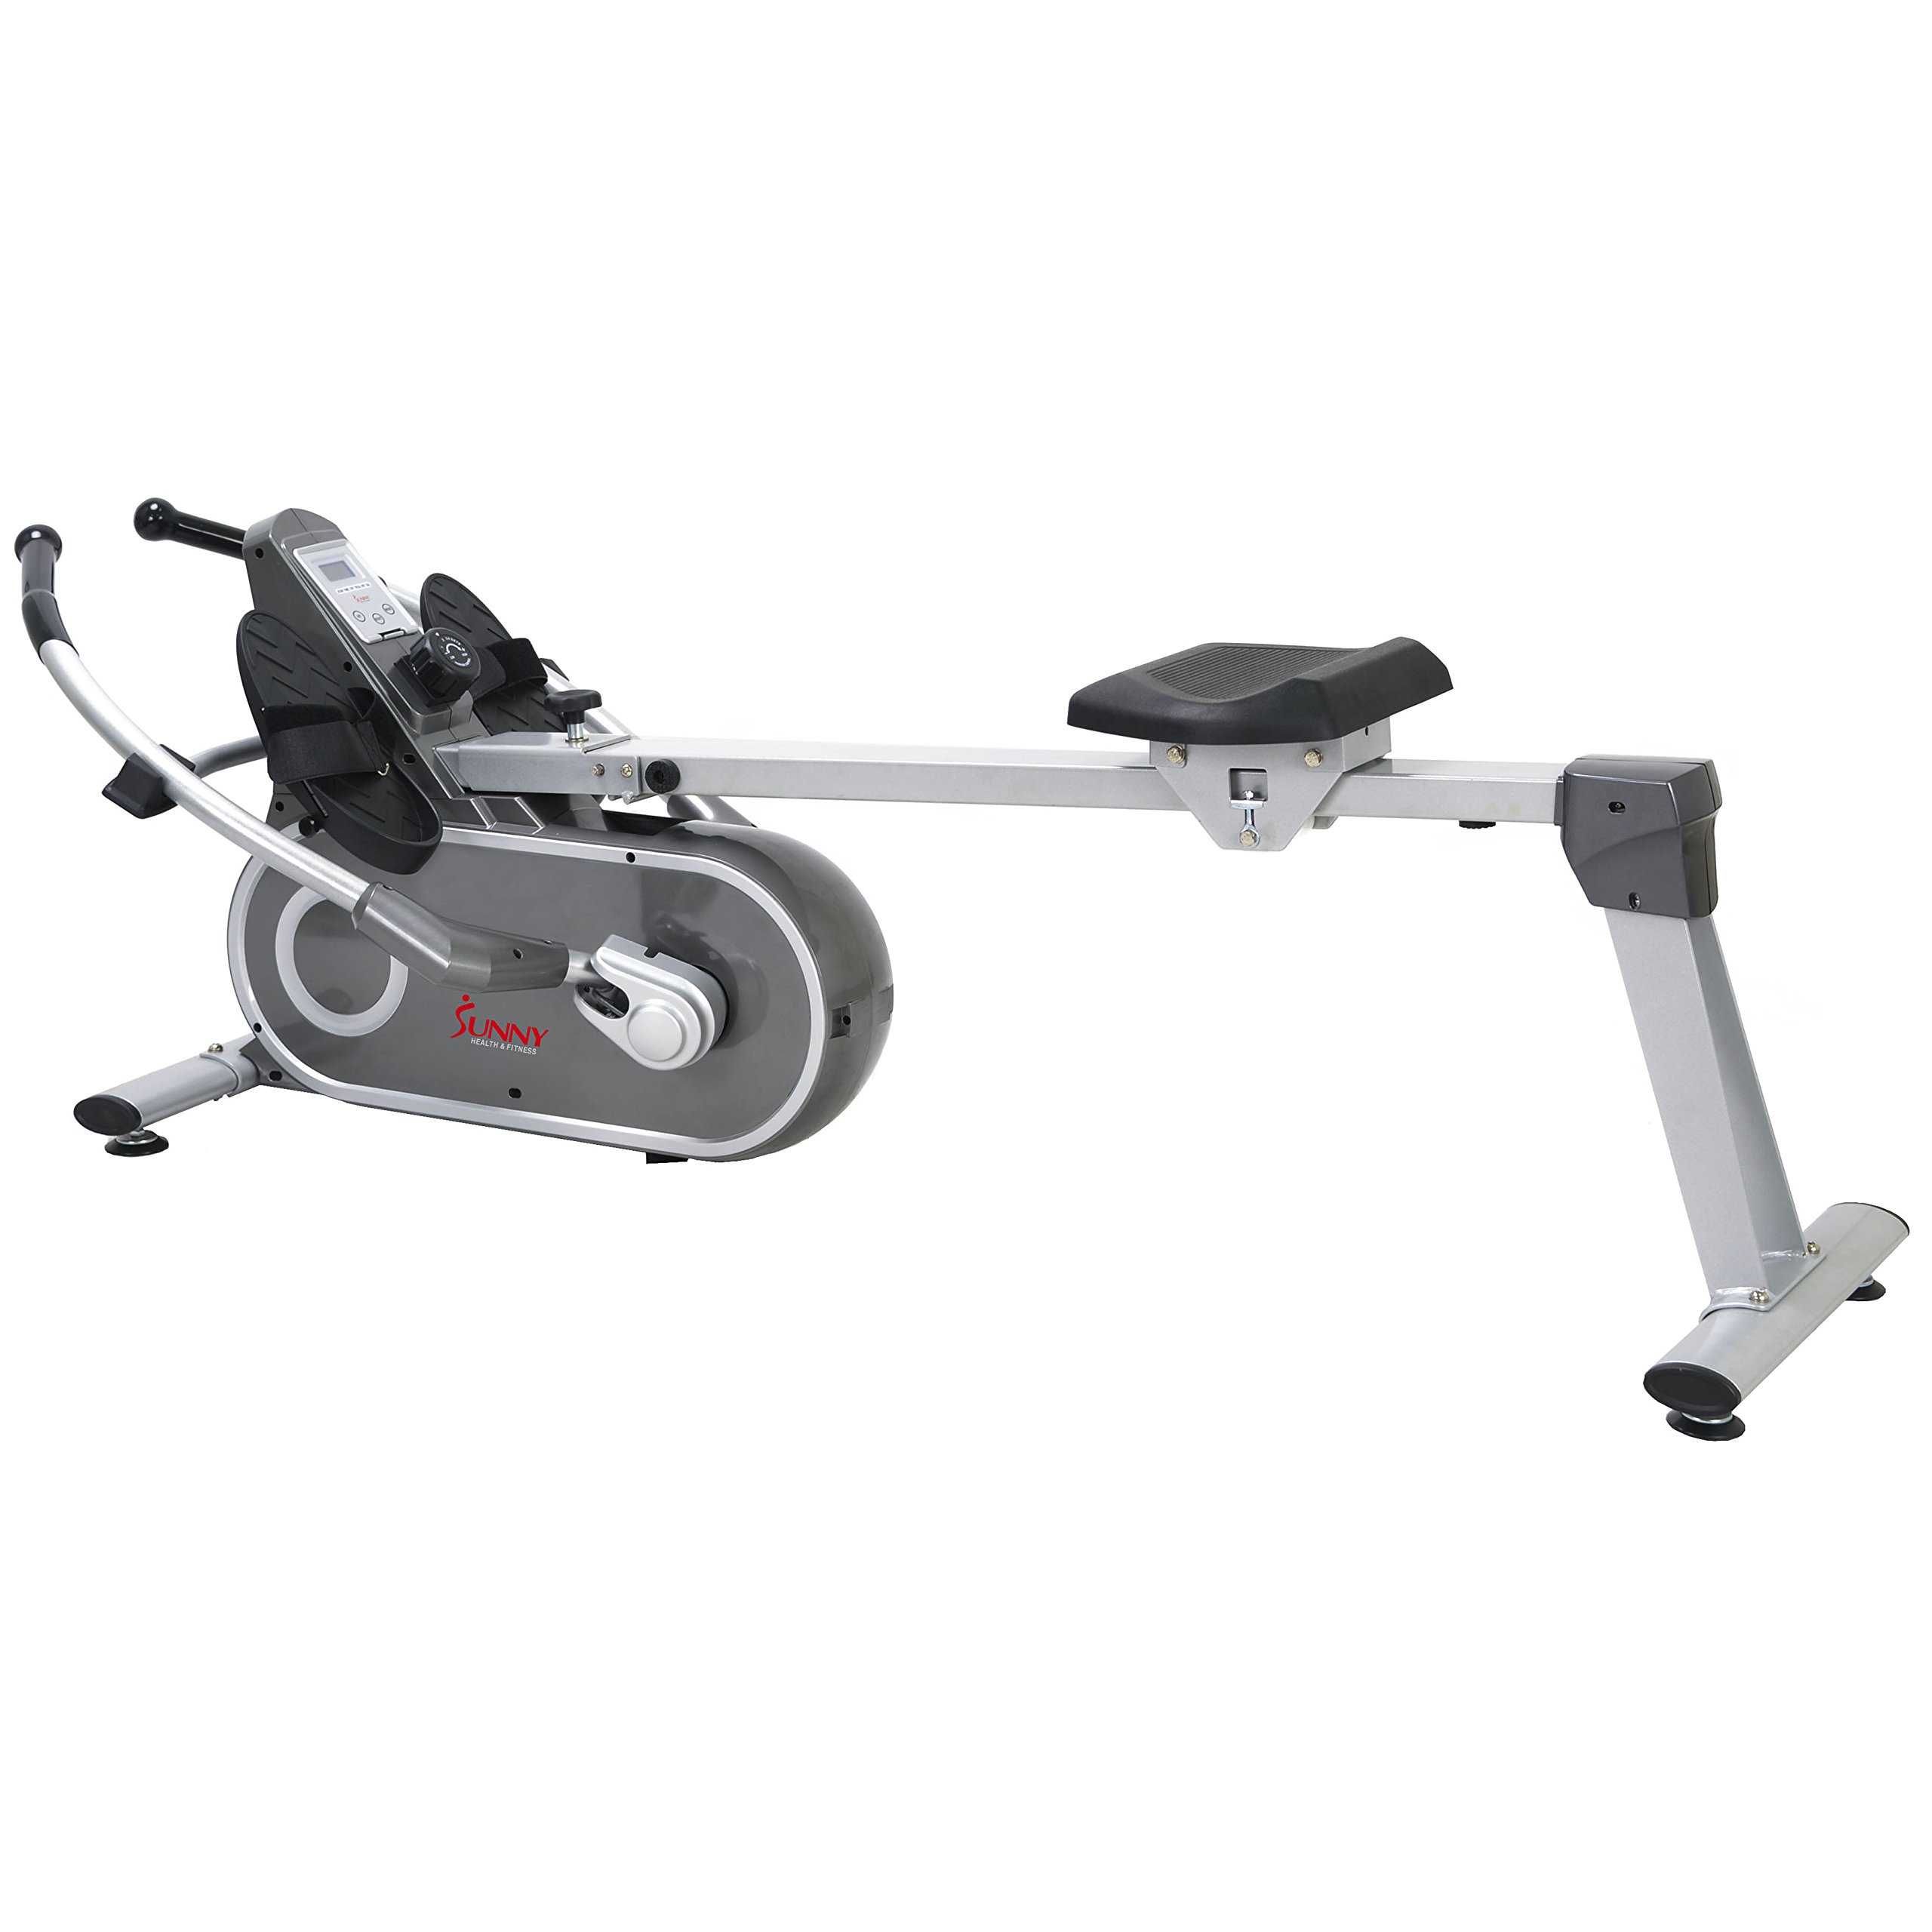 Sunny Health & Fitness SF-RW5624 Full Motion Magnetic Rowing Machine Rower w/ LCD Monitor by Sunny Health & Fitness (Image #1)